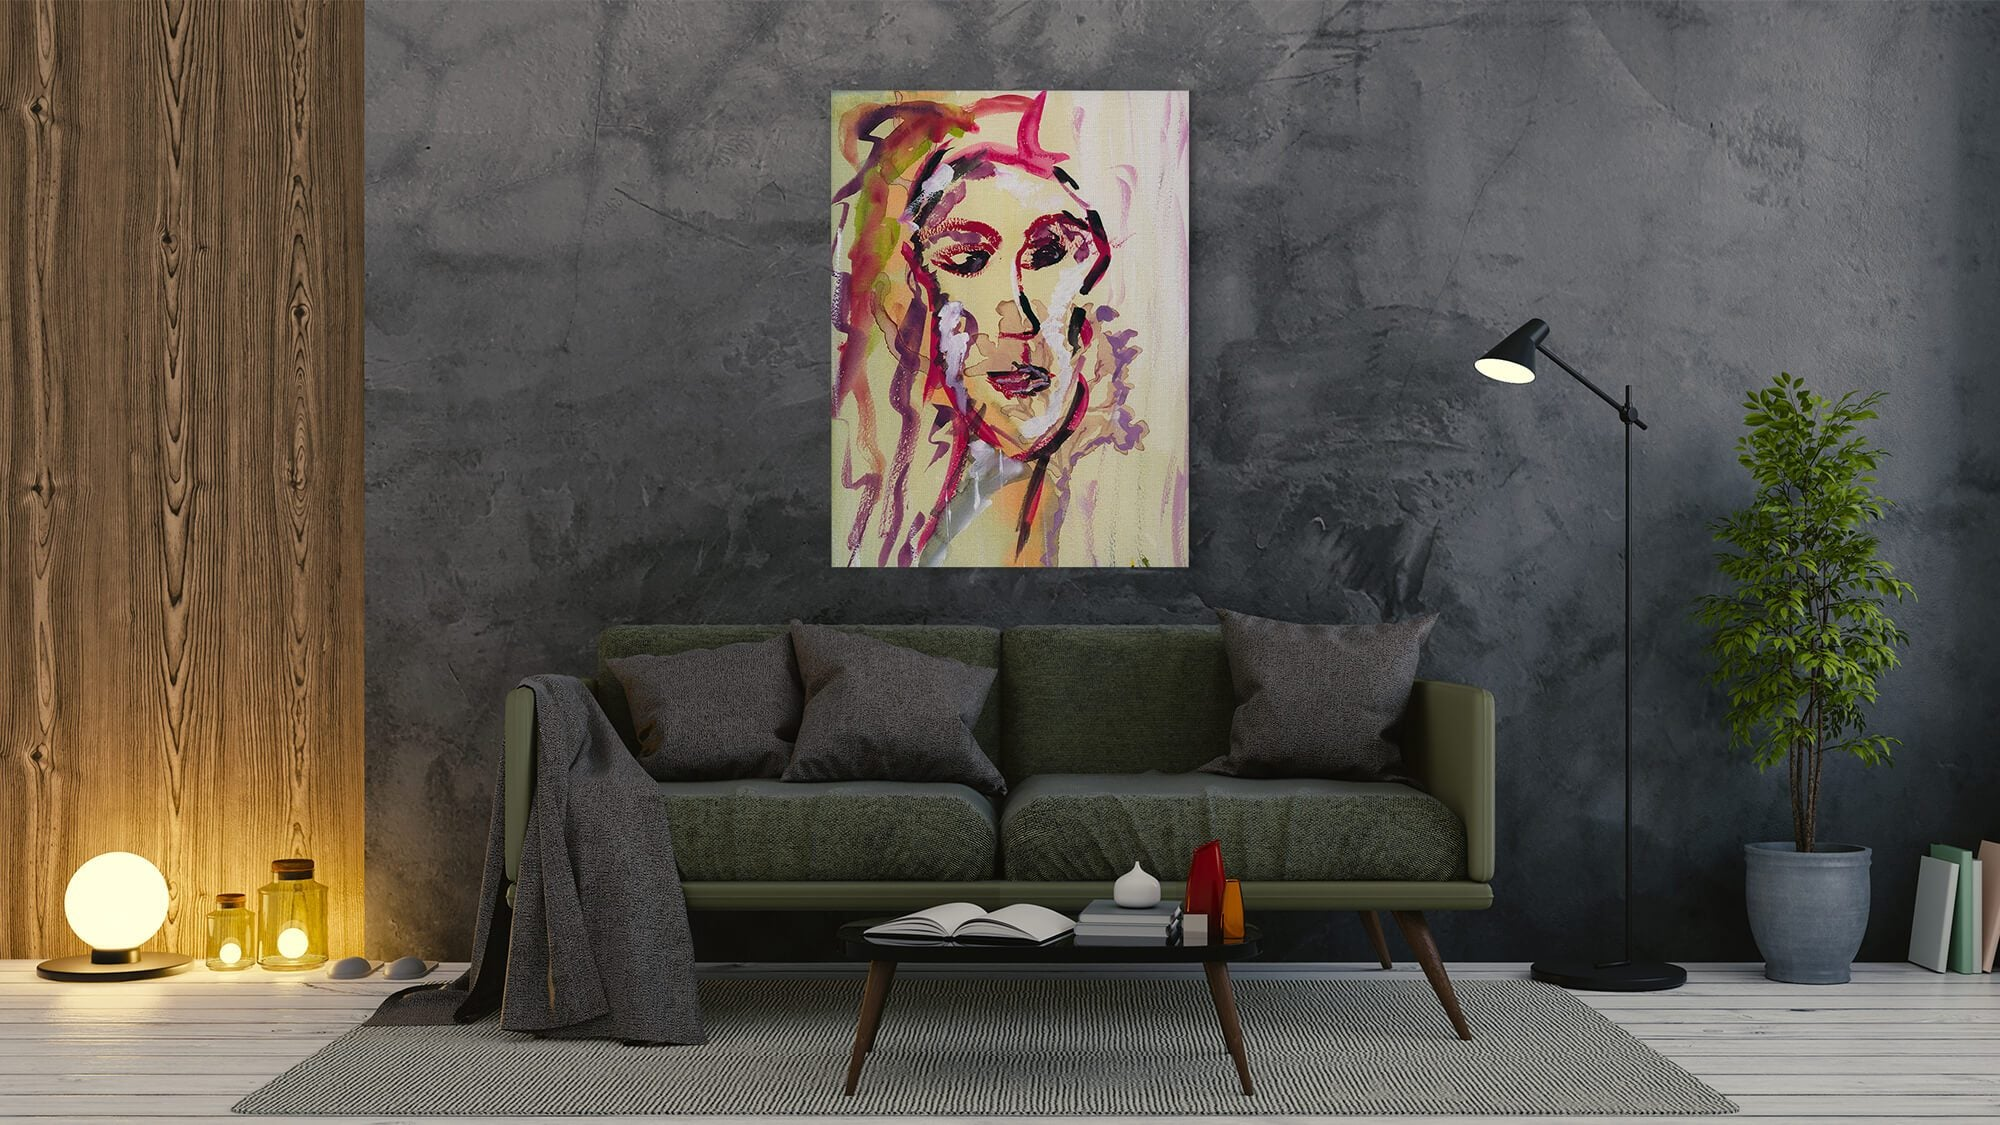 Thoughtful Woman - canvas-to-the-people - Exclusive Canvas Art Shipped Globally